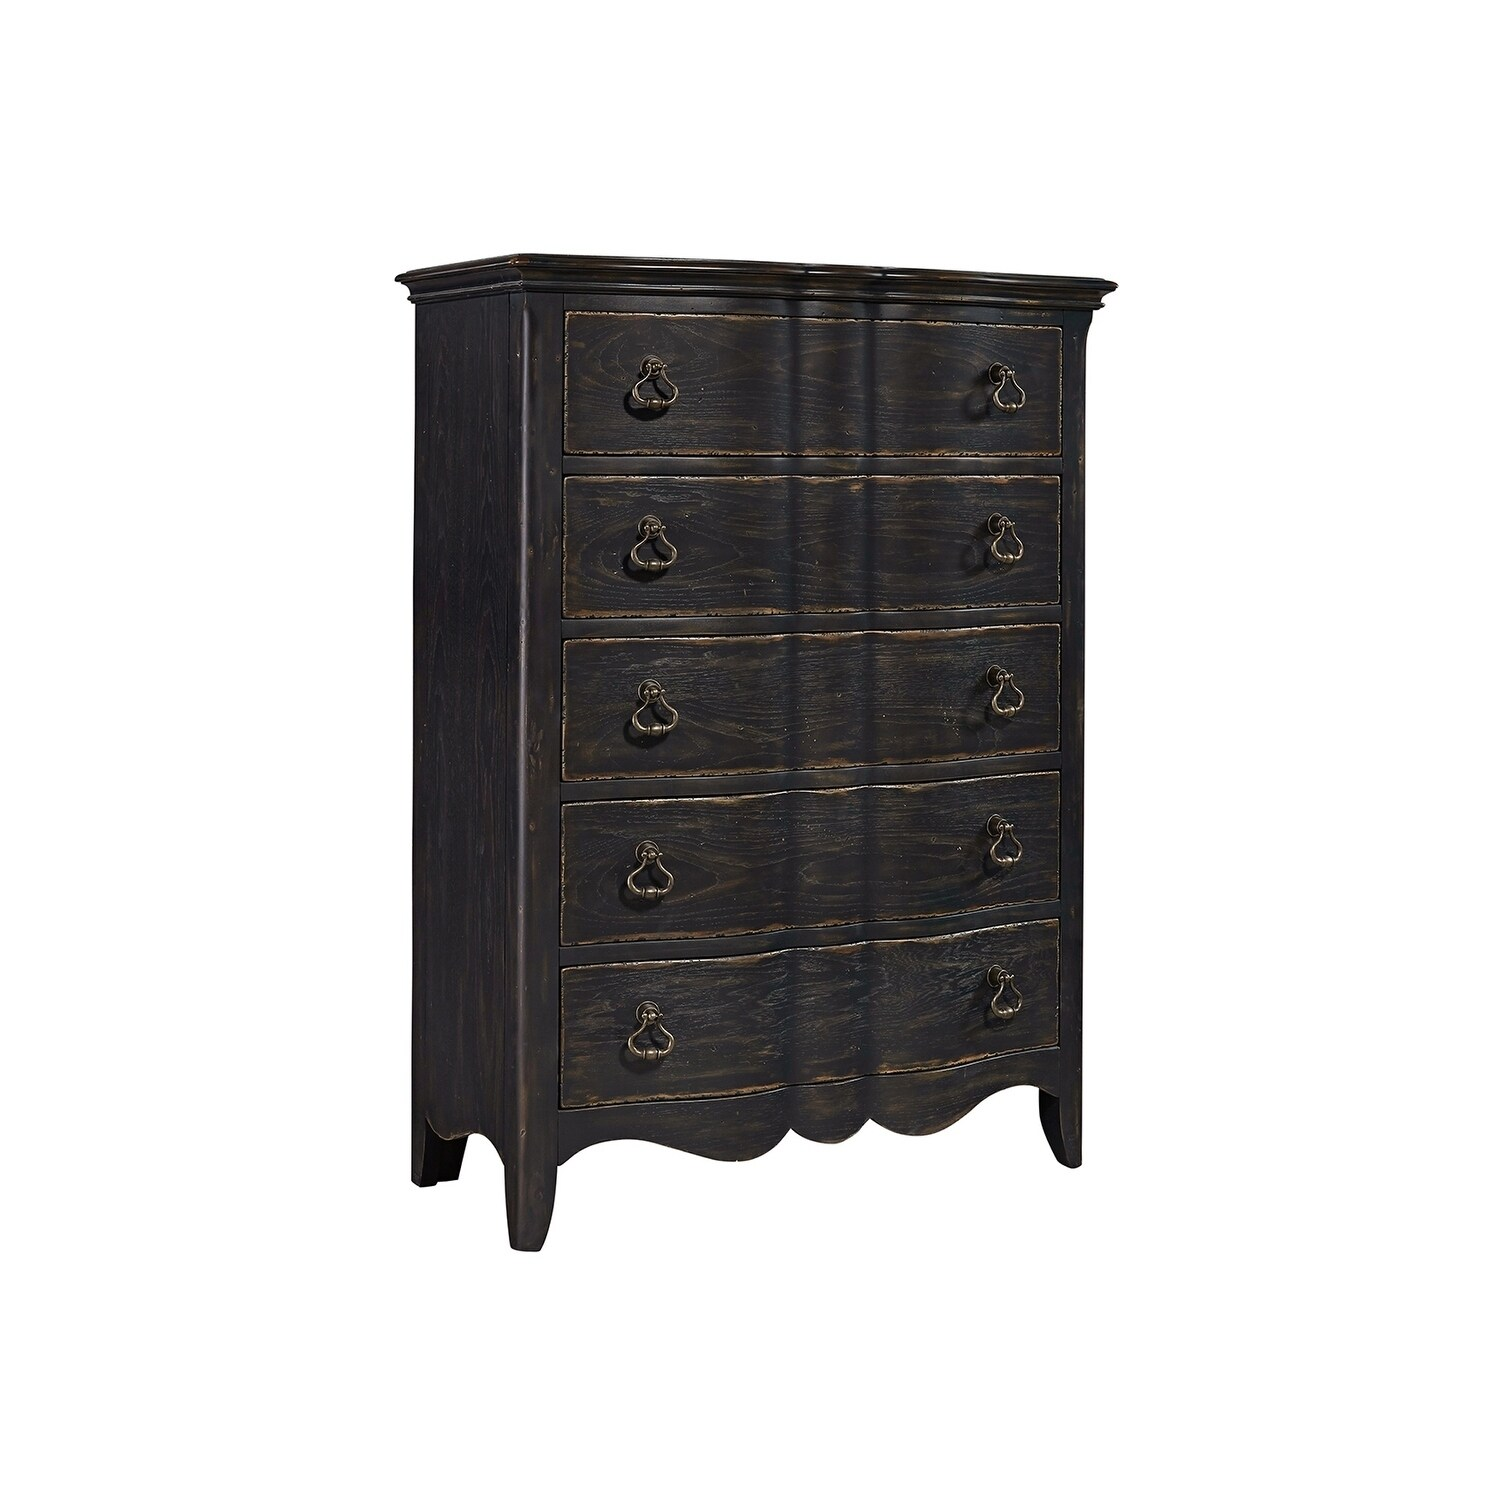 en nathan lacks dresser chest drawer black